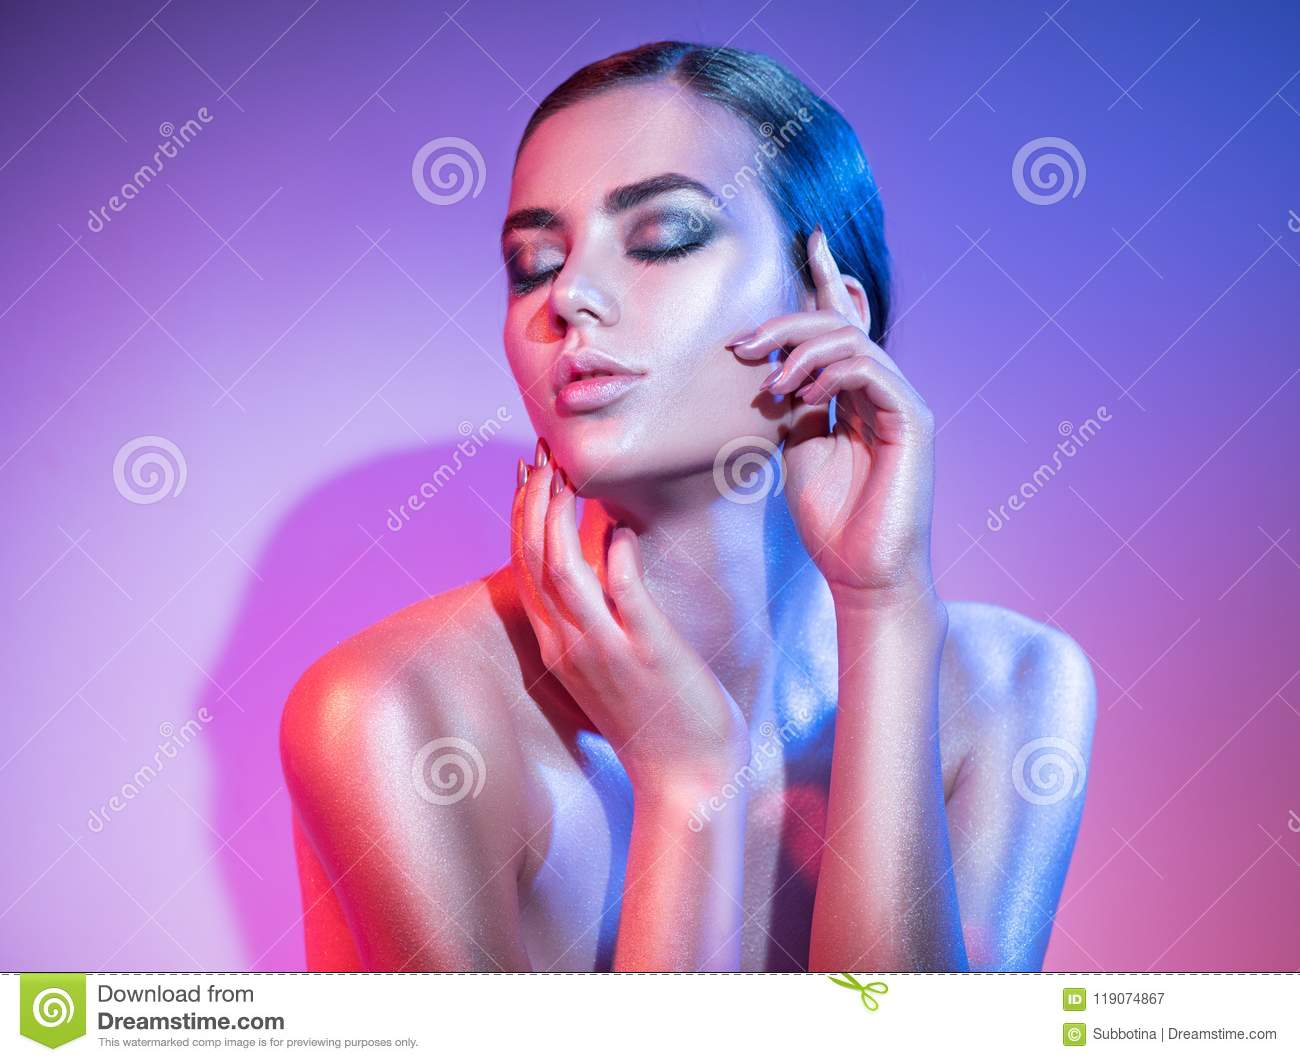 Fashion model woman in colourful bright sparkles and neon lights posing in studio, portrait of beautiful girl